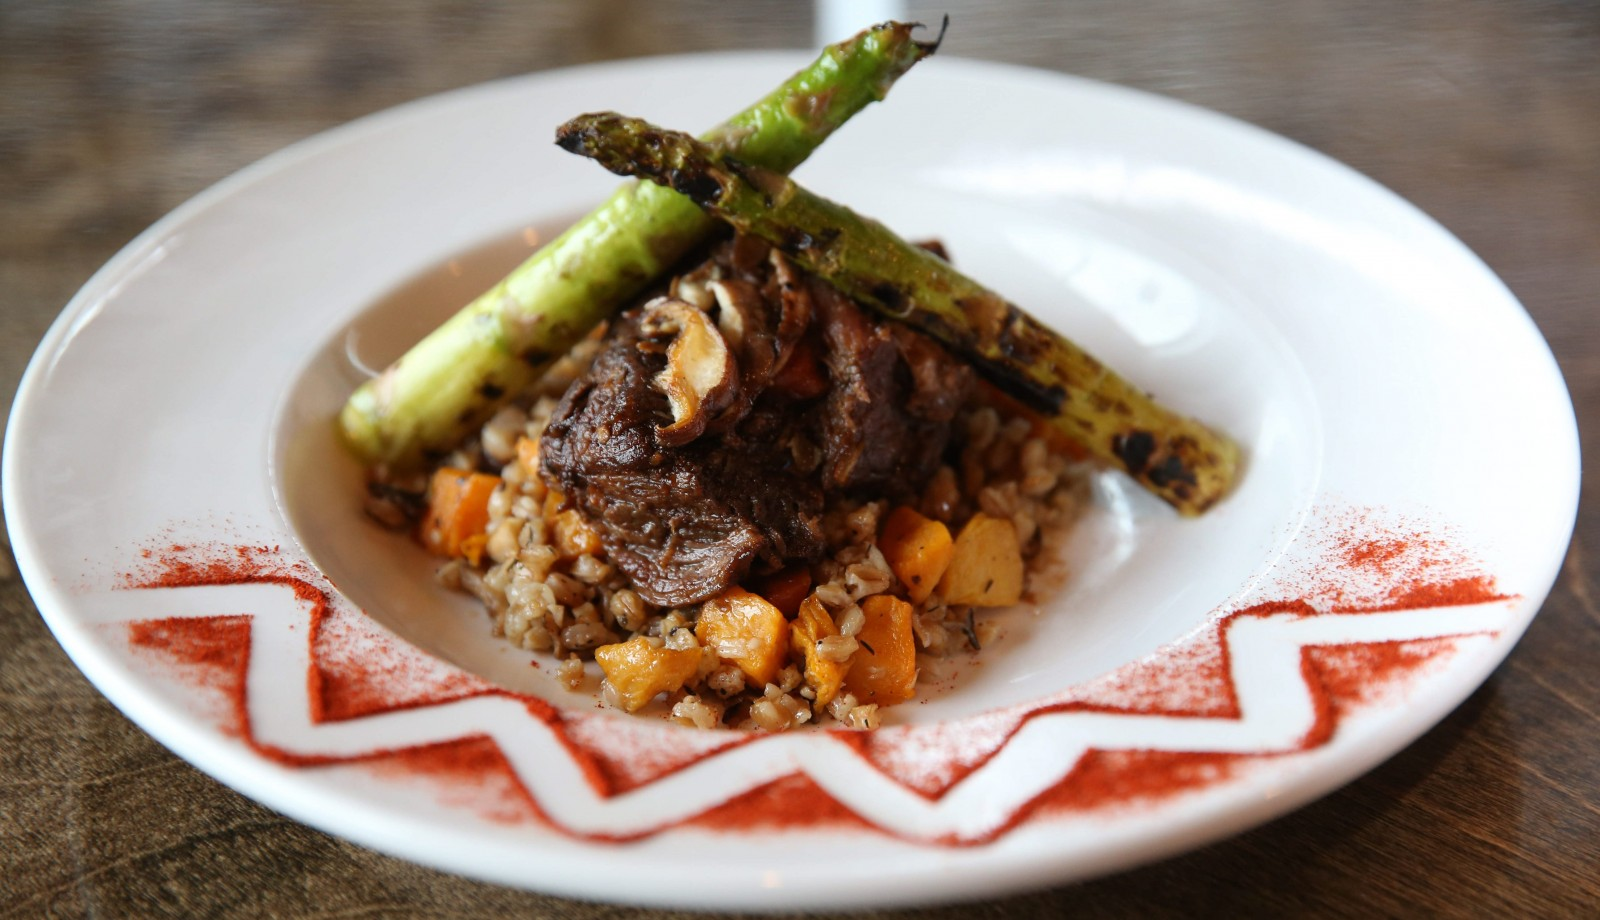 Eight-hour red wine braised short ribs served over a faro risotto with roasted butternut squash, sauteed mushrooms, fresh sage, garlic and fresh grated Parmesan. (Sharon Cantillon/Buffalo News)